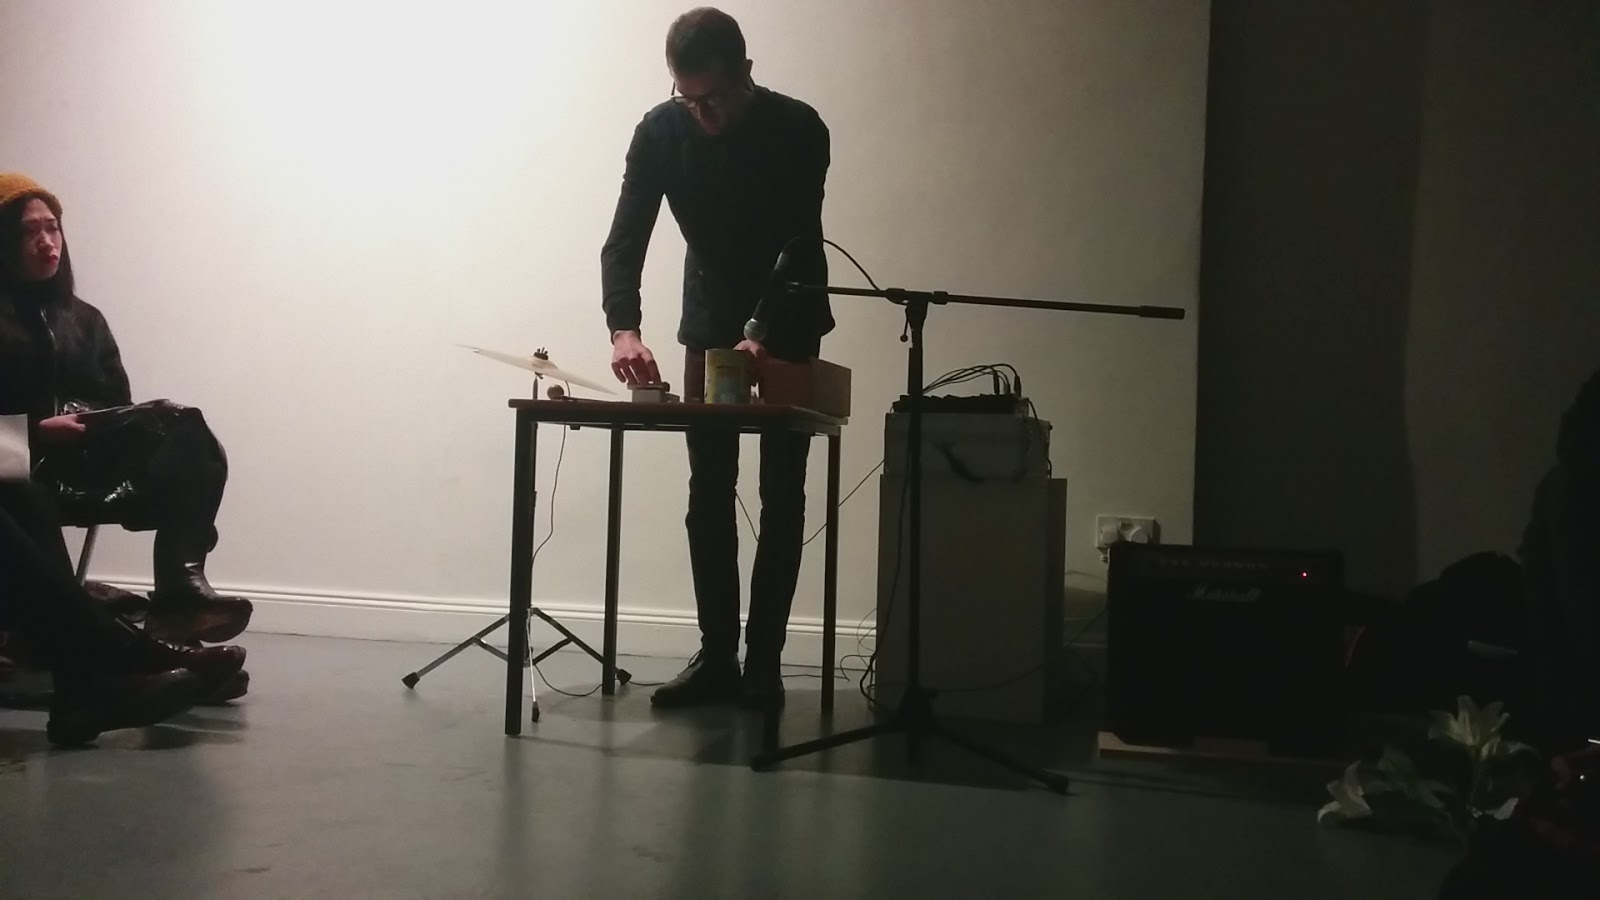 Performing  Approaching The Object  at Constantly Evolving But Never Ending, Angus-Hughes Gallery, London 2015 using cocoa tin, metal ruler amplified table top, glass jar, cymbal and various found and collected objects.